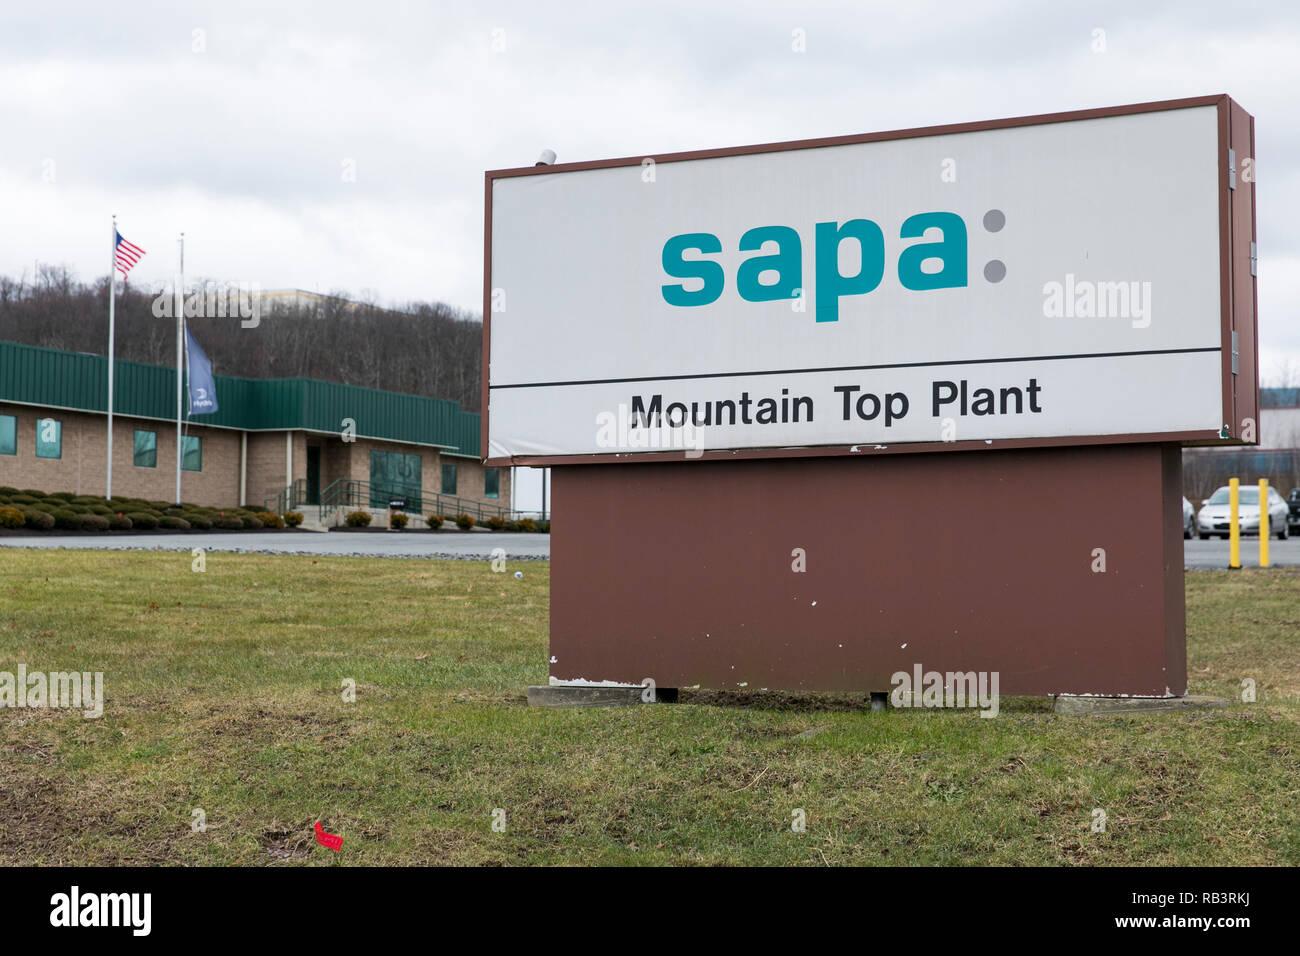 A logo sign outside of a facility occupied by Sapa Extrusions in Mountain Top, Pennsylvania, on December 29, 2018. - Stock Image